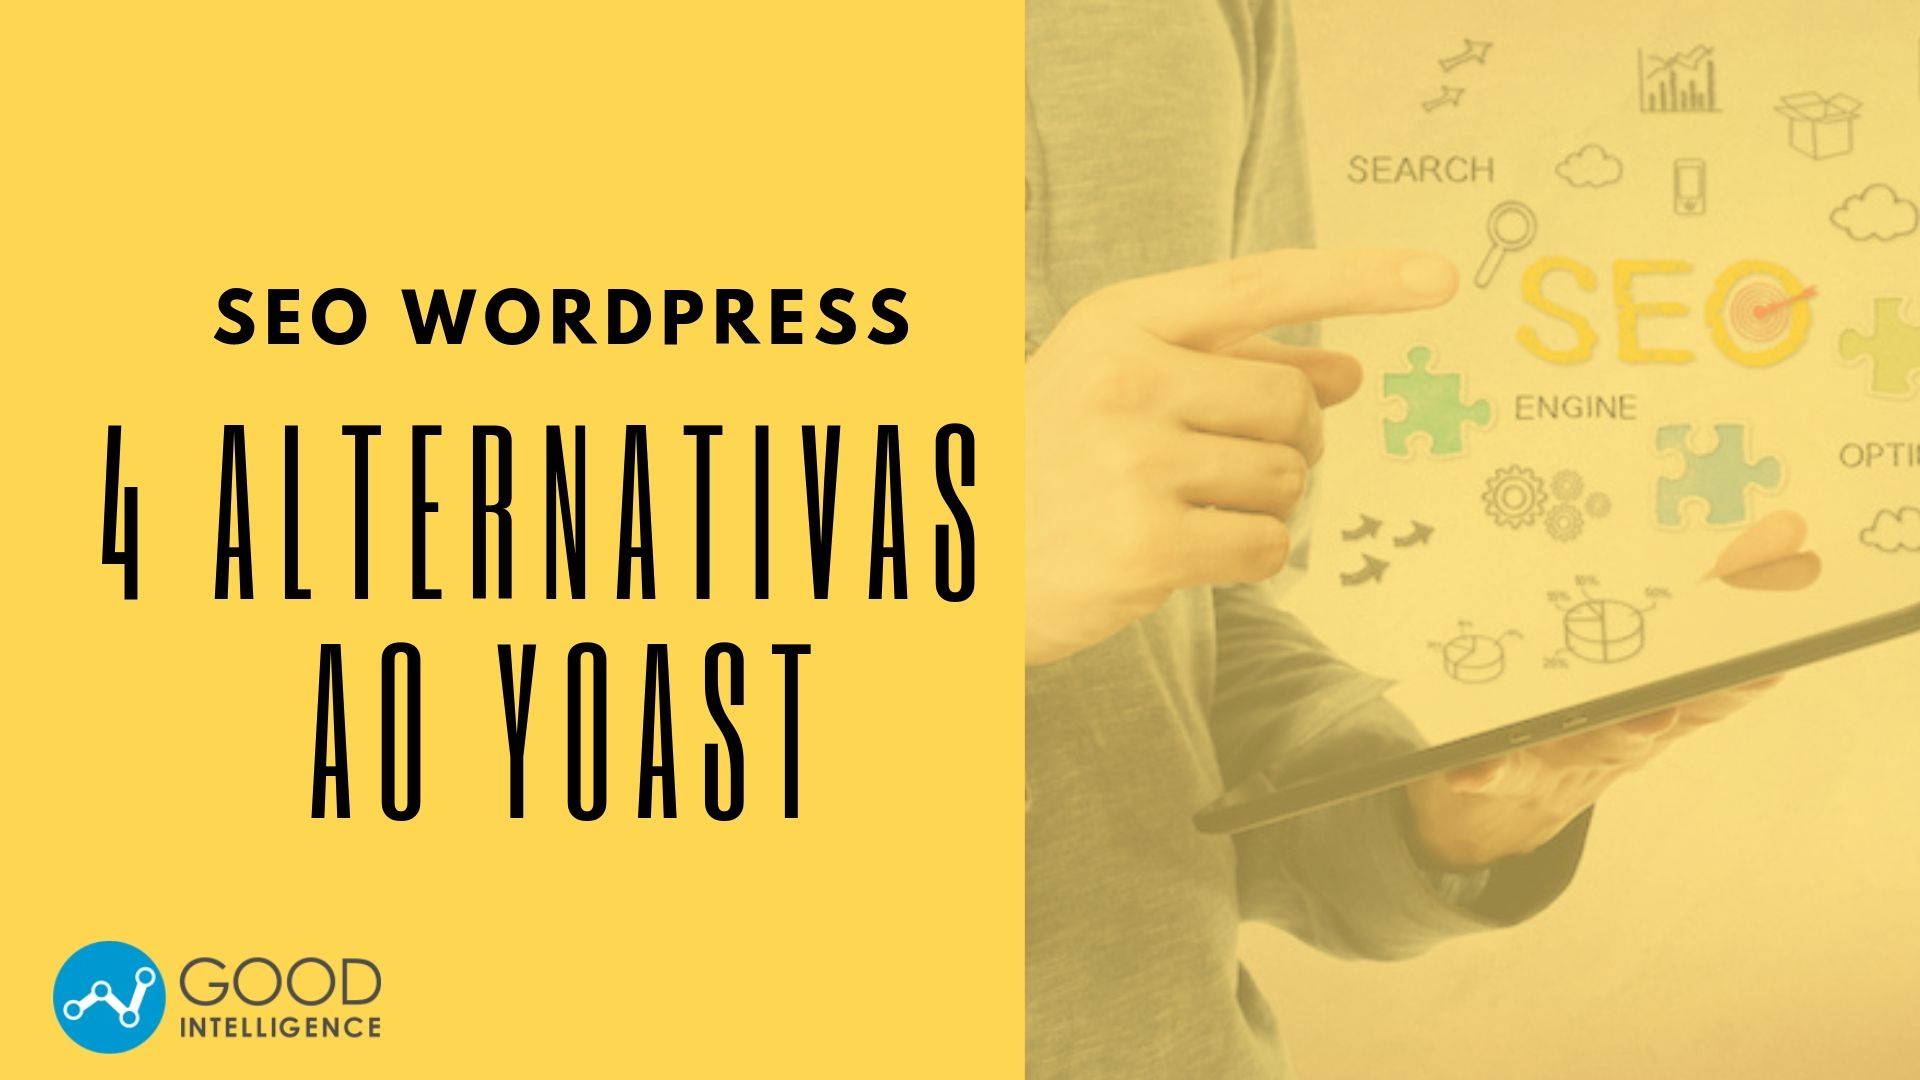 4 ALTERNATIVAS AO YOAST